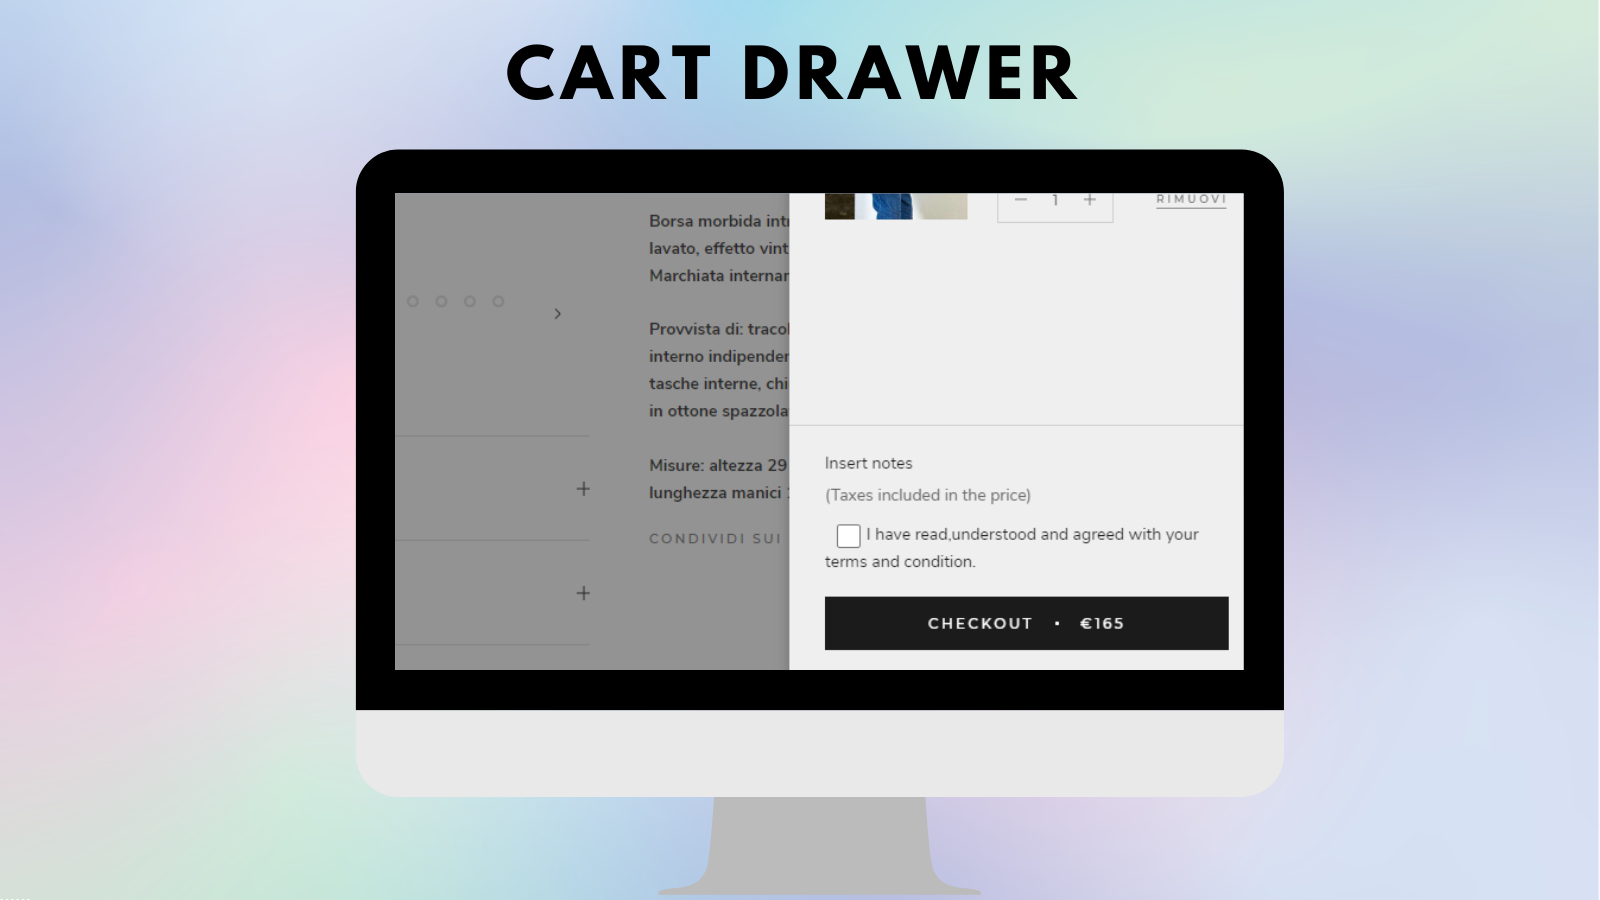 I agree to terms checkbox on the cart drawer - Tech Dignity